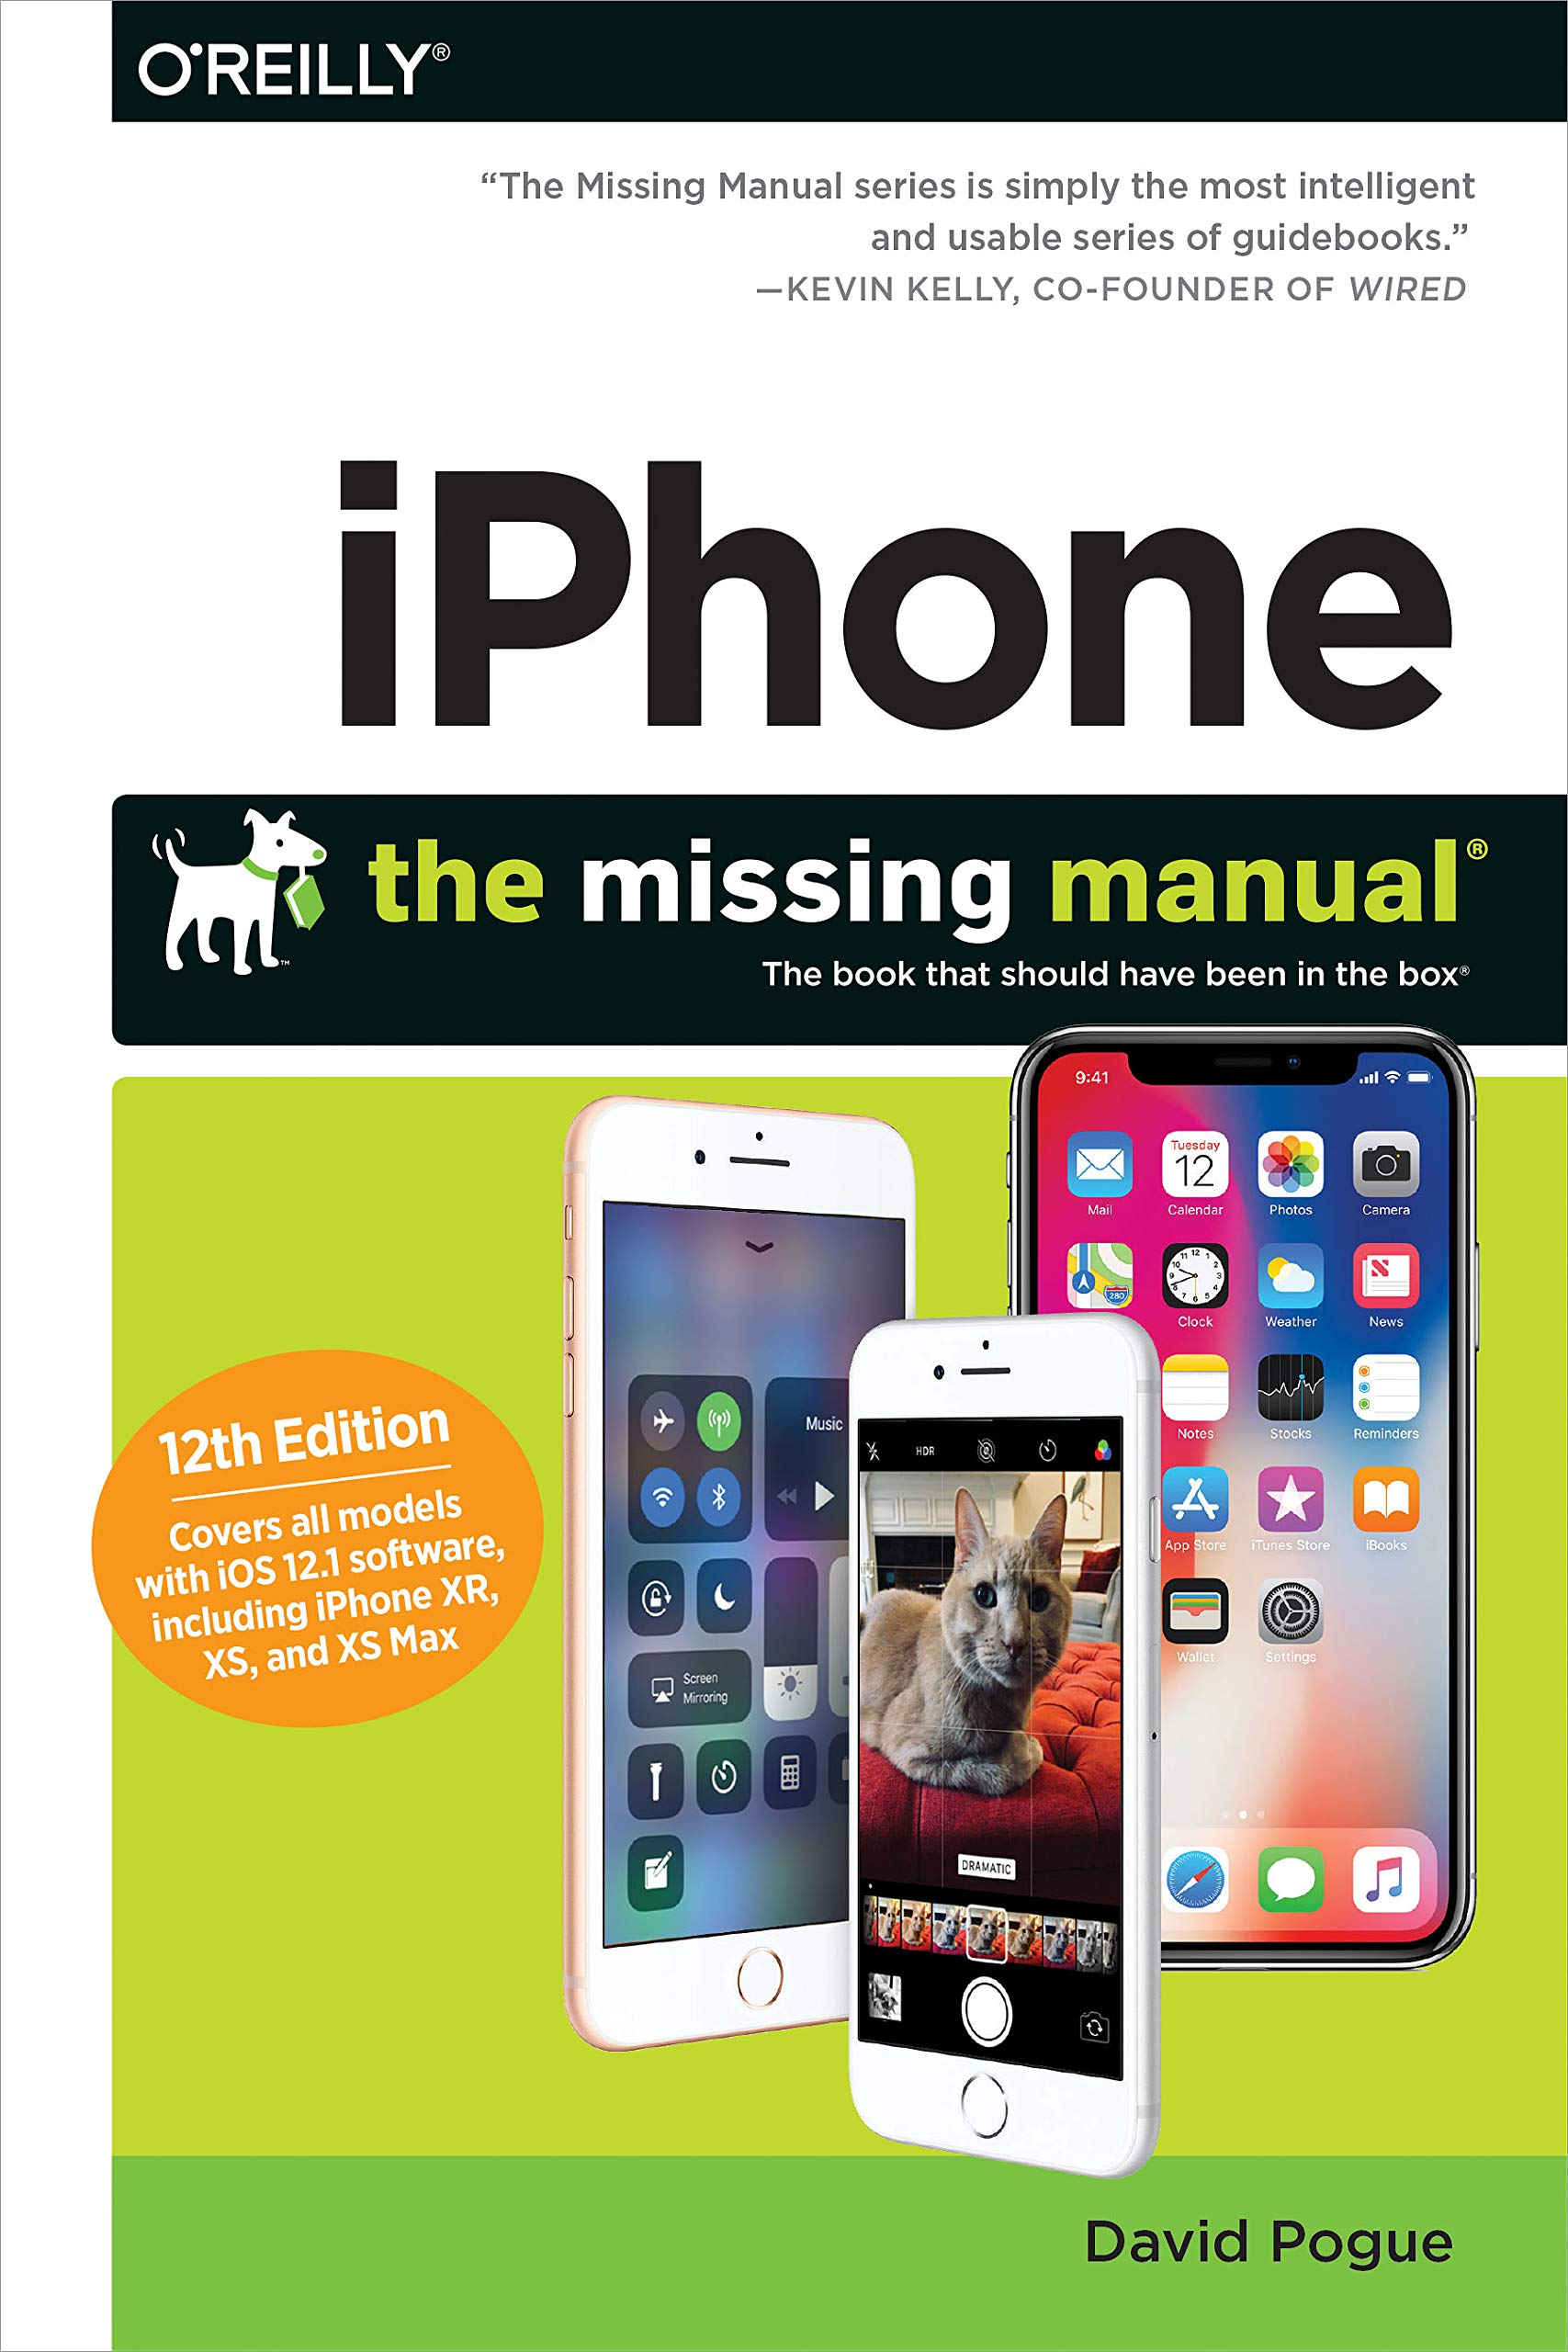 Iphone: The Missing Manual: The Book That Should Have Been